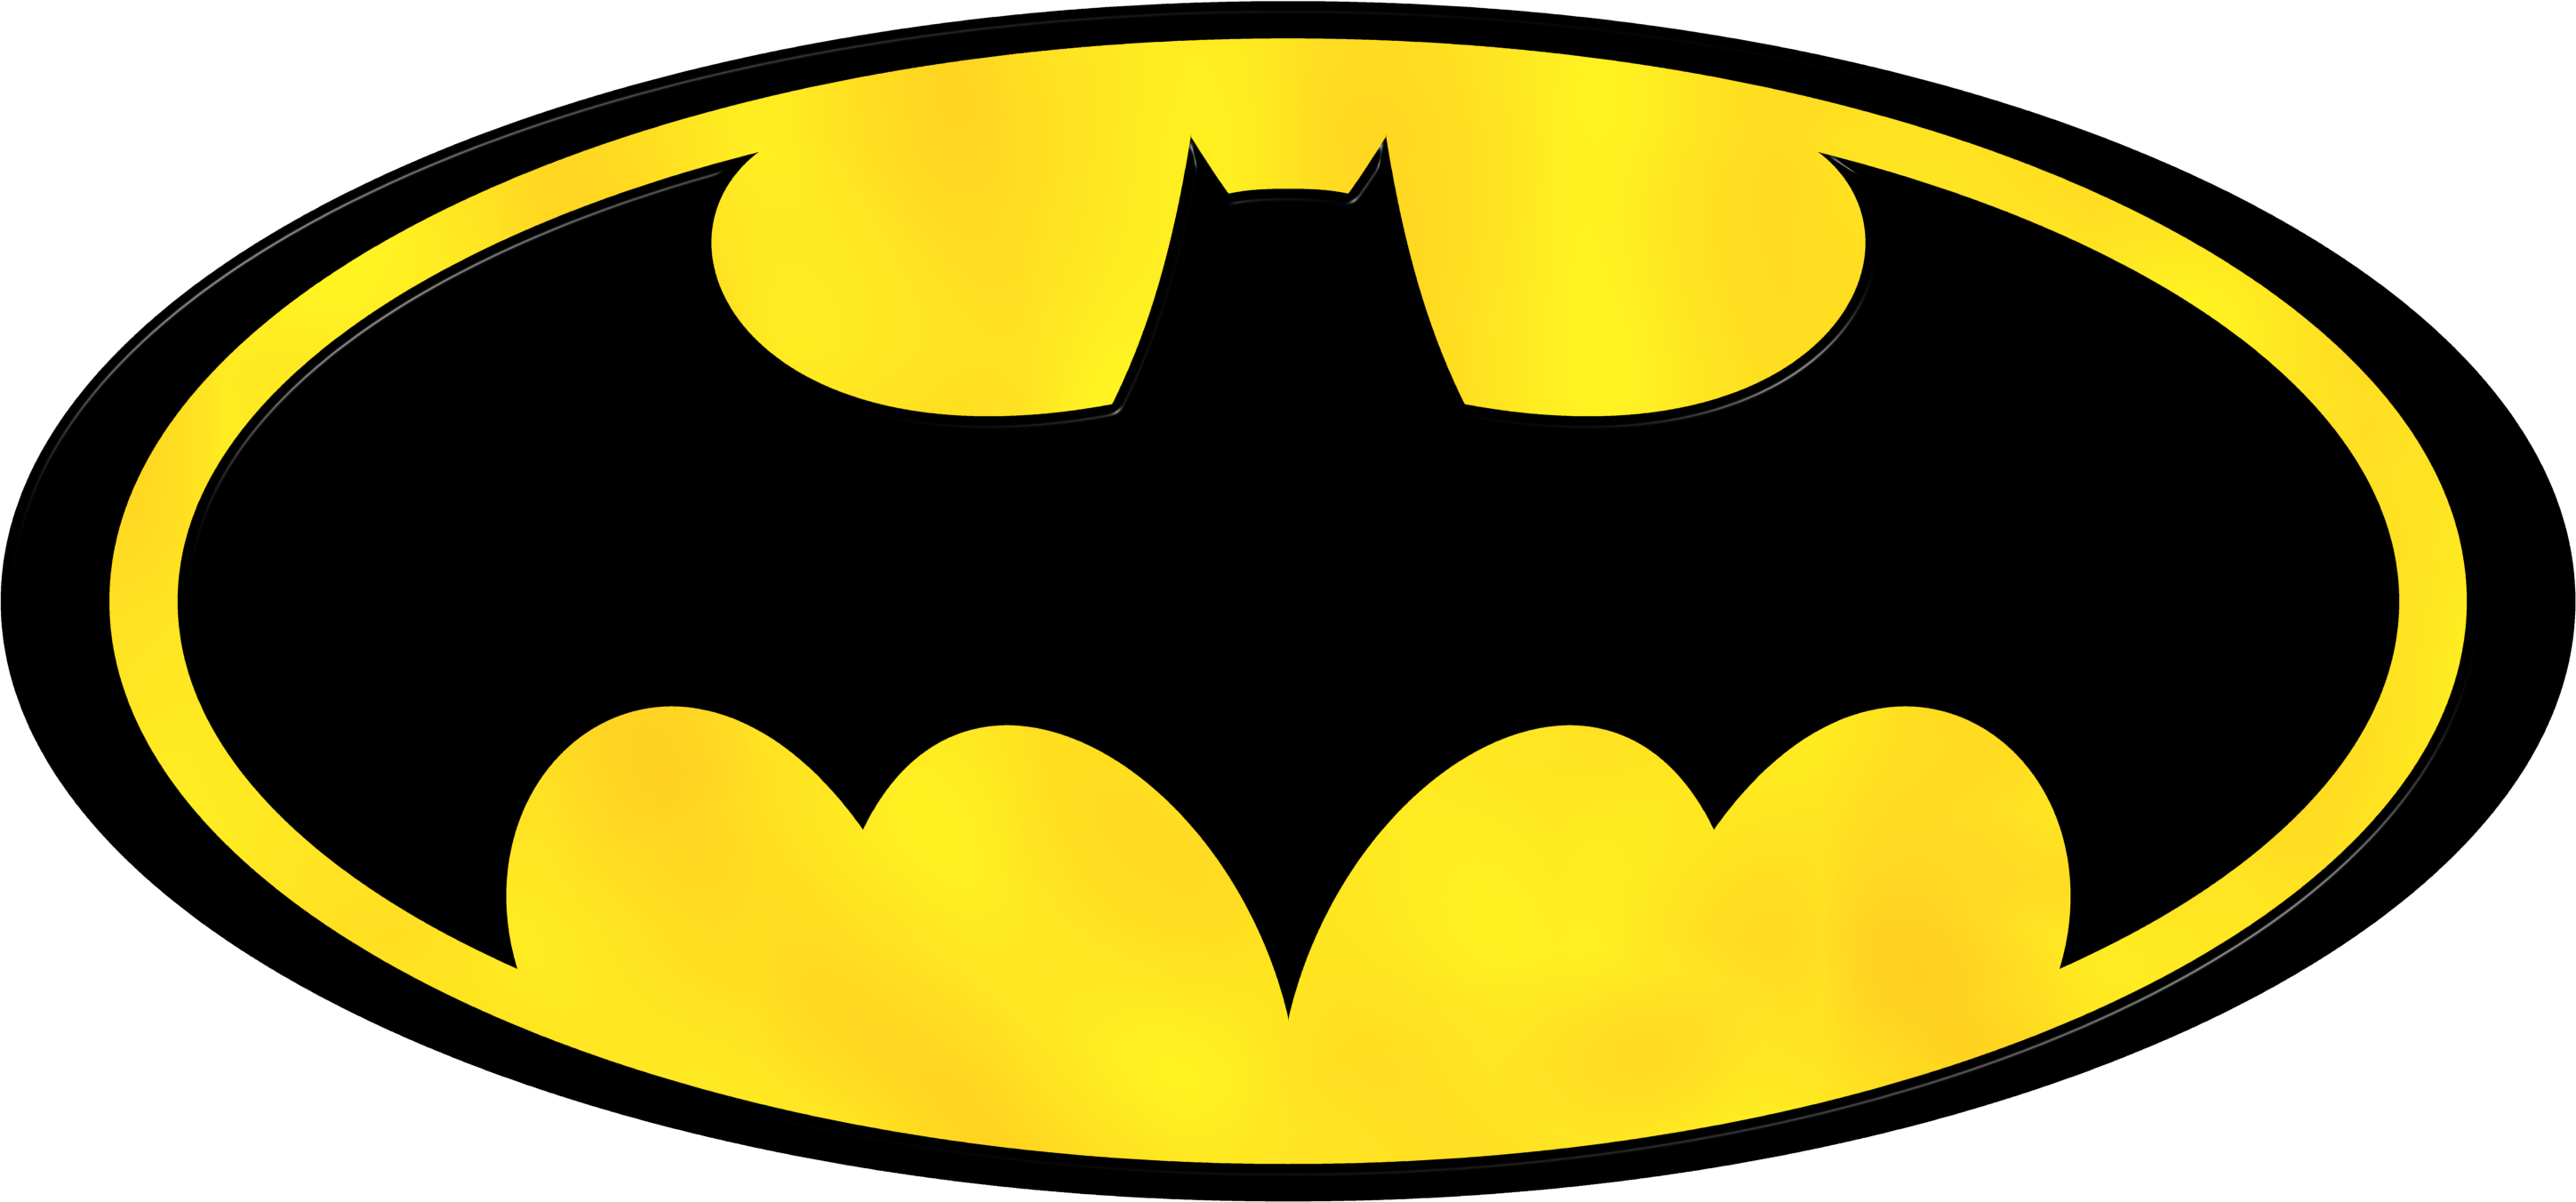 Just Your Standard Batman LogoI Am A Huge Fan So I Would Love To Get Tattoo For My Next One Dont Know If Want The Logo